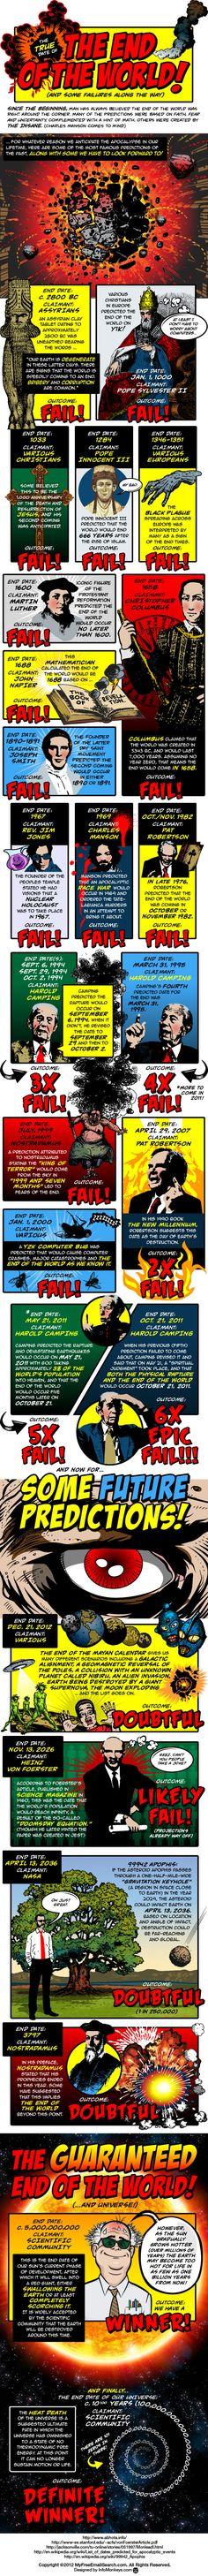 The True Date of The End of the World! (and Some Failures Along the Way) by myfreeemailsearch.com